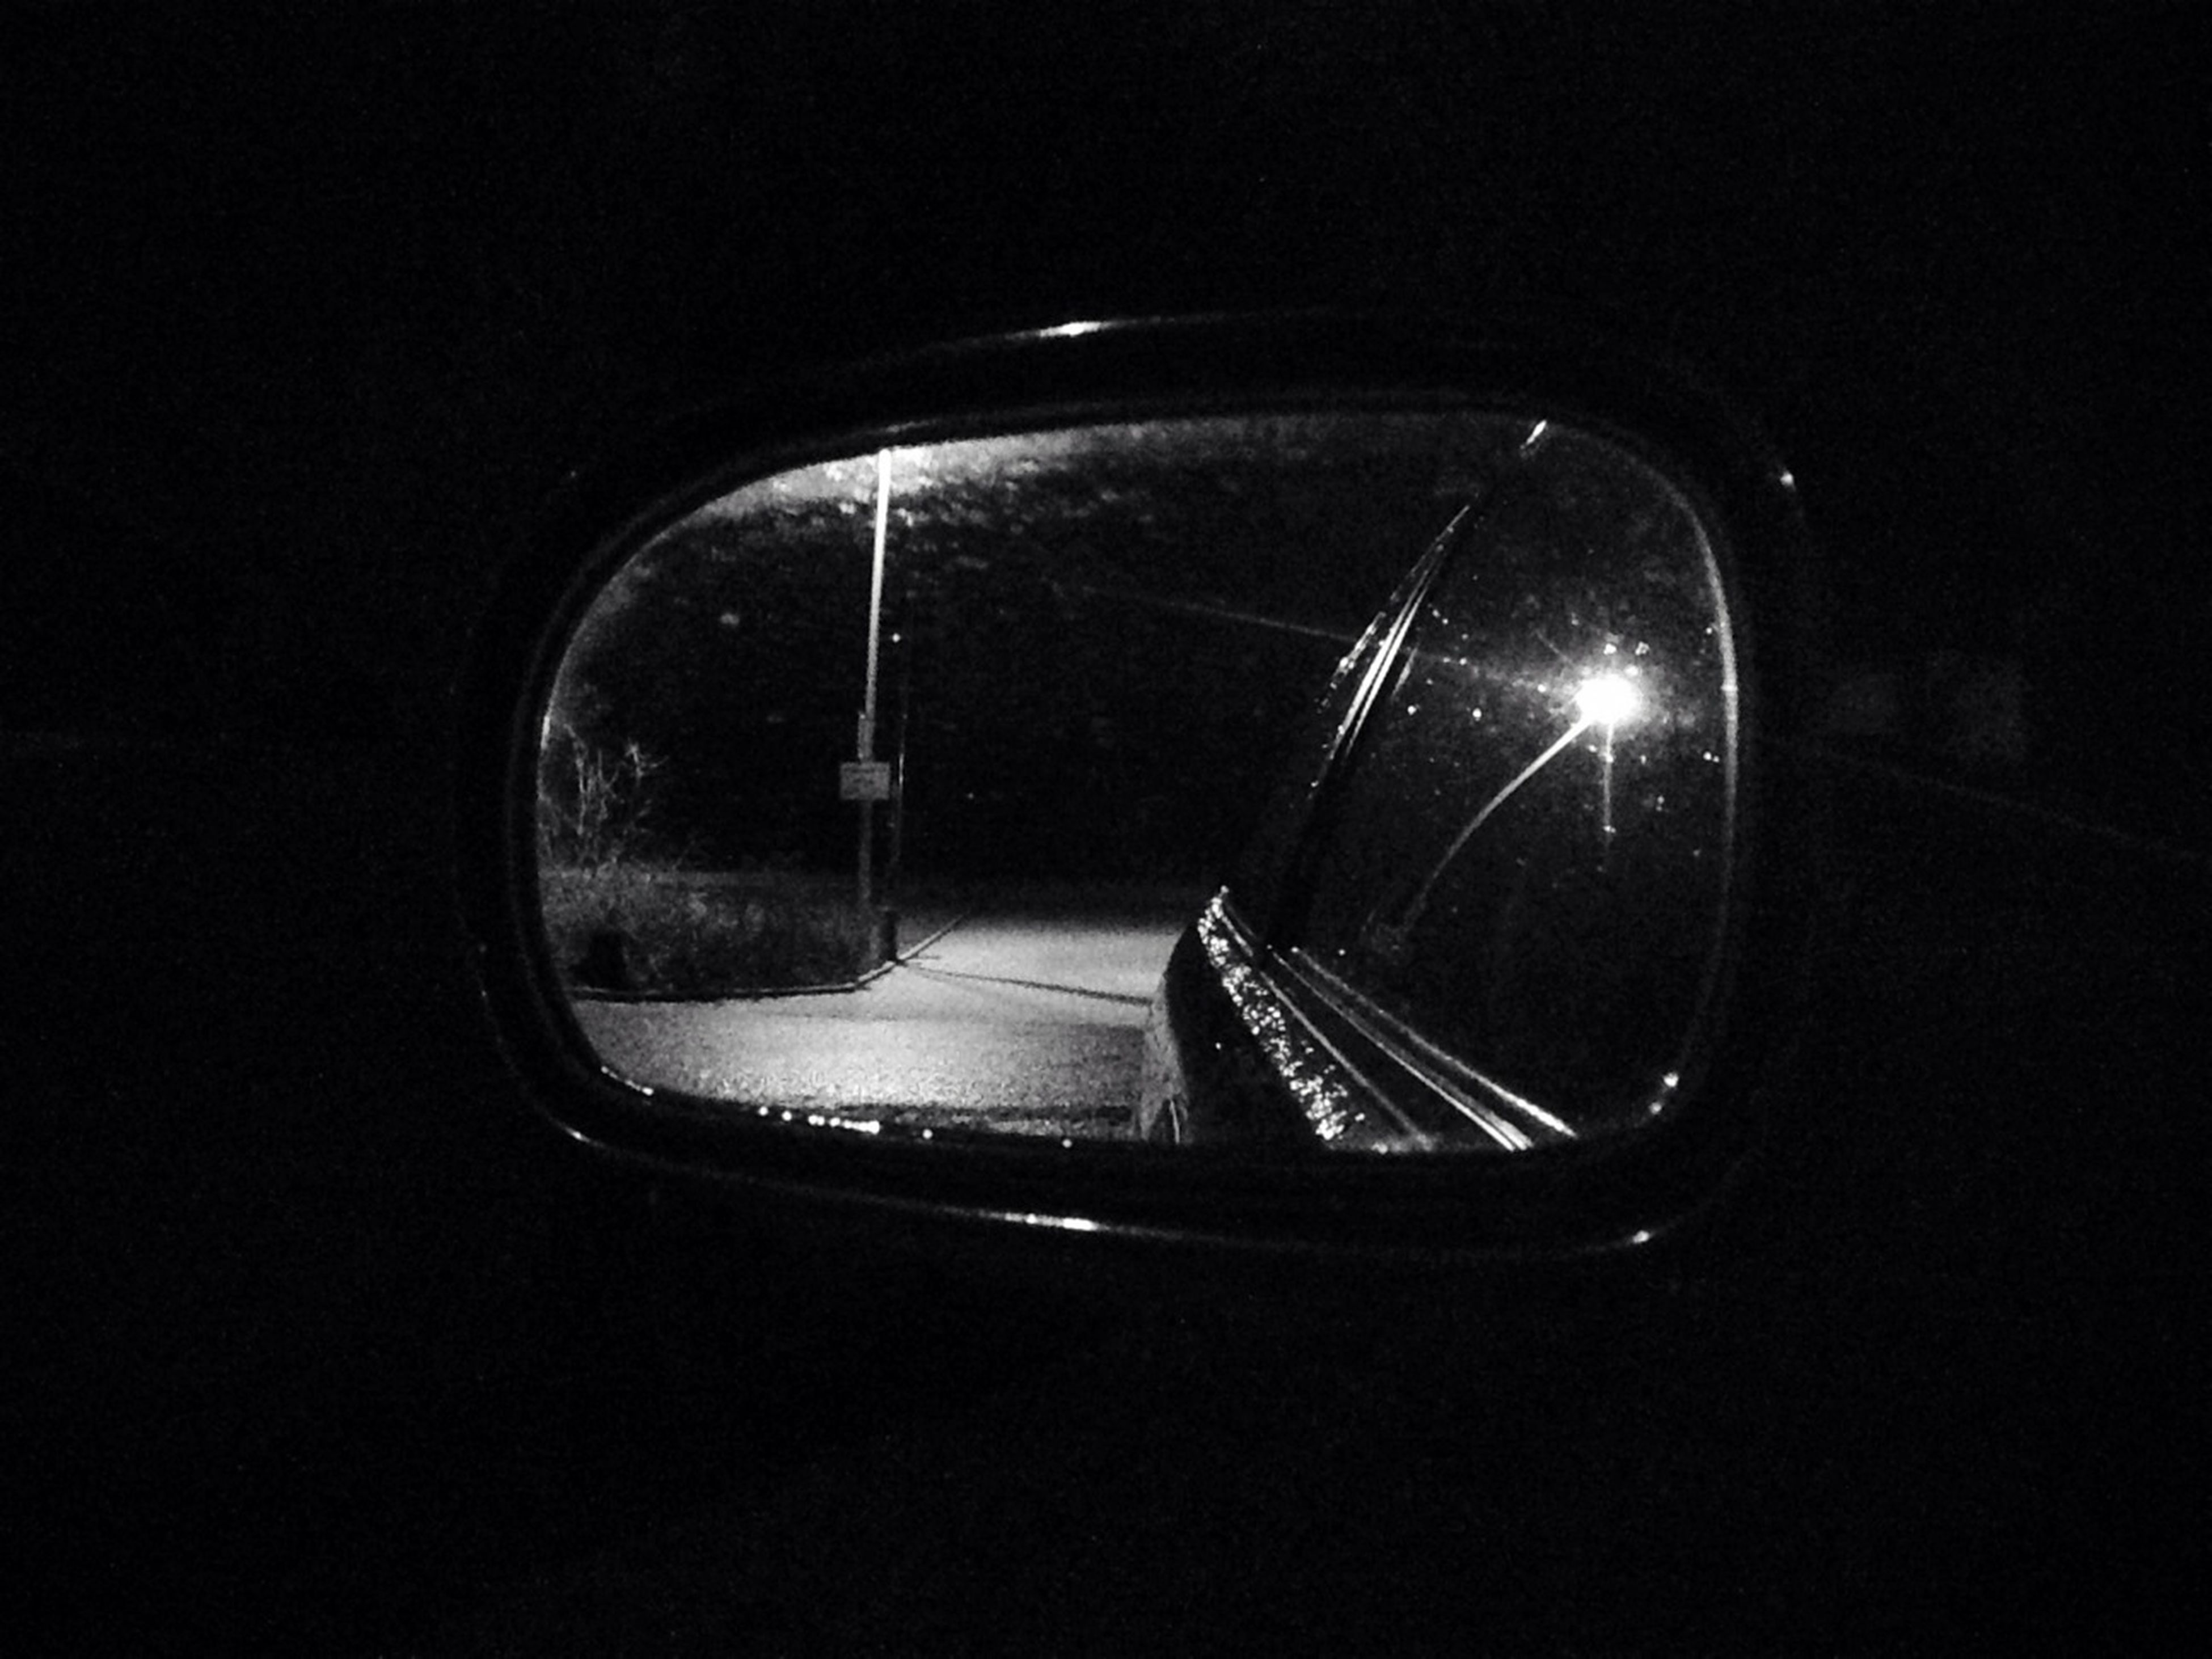 transportation, mode of transport, car, land vehicle, glass - material, transparent, reflection, window, vehicle interior, road, side-view mirror, on the move, street, travel, motion, indoors, windshield, car interior, night, close-up